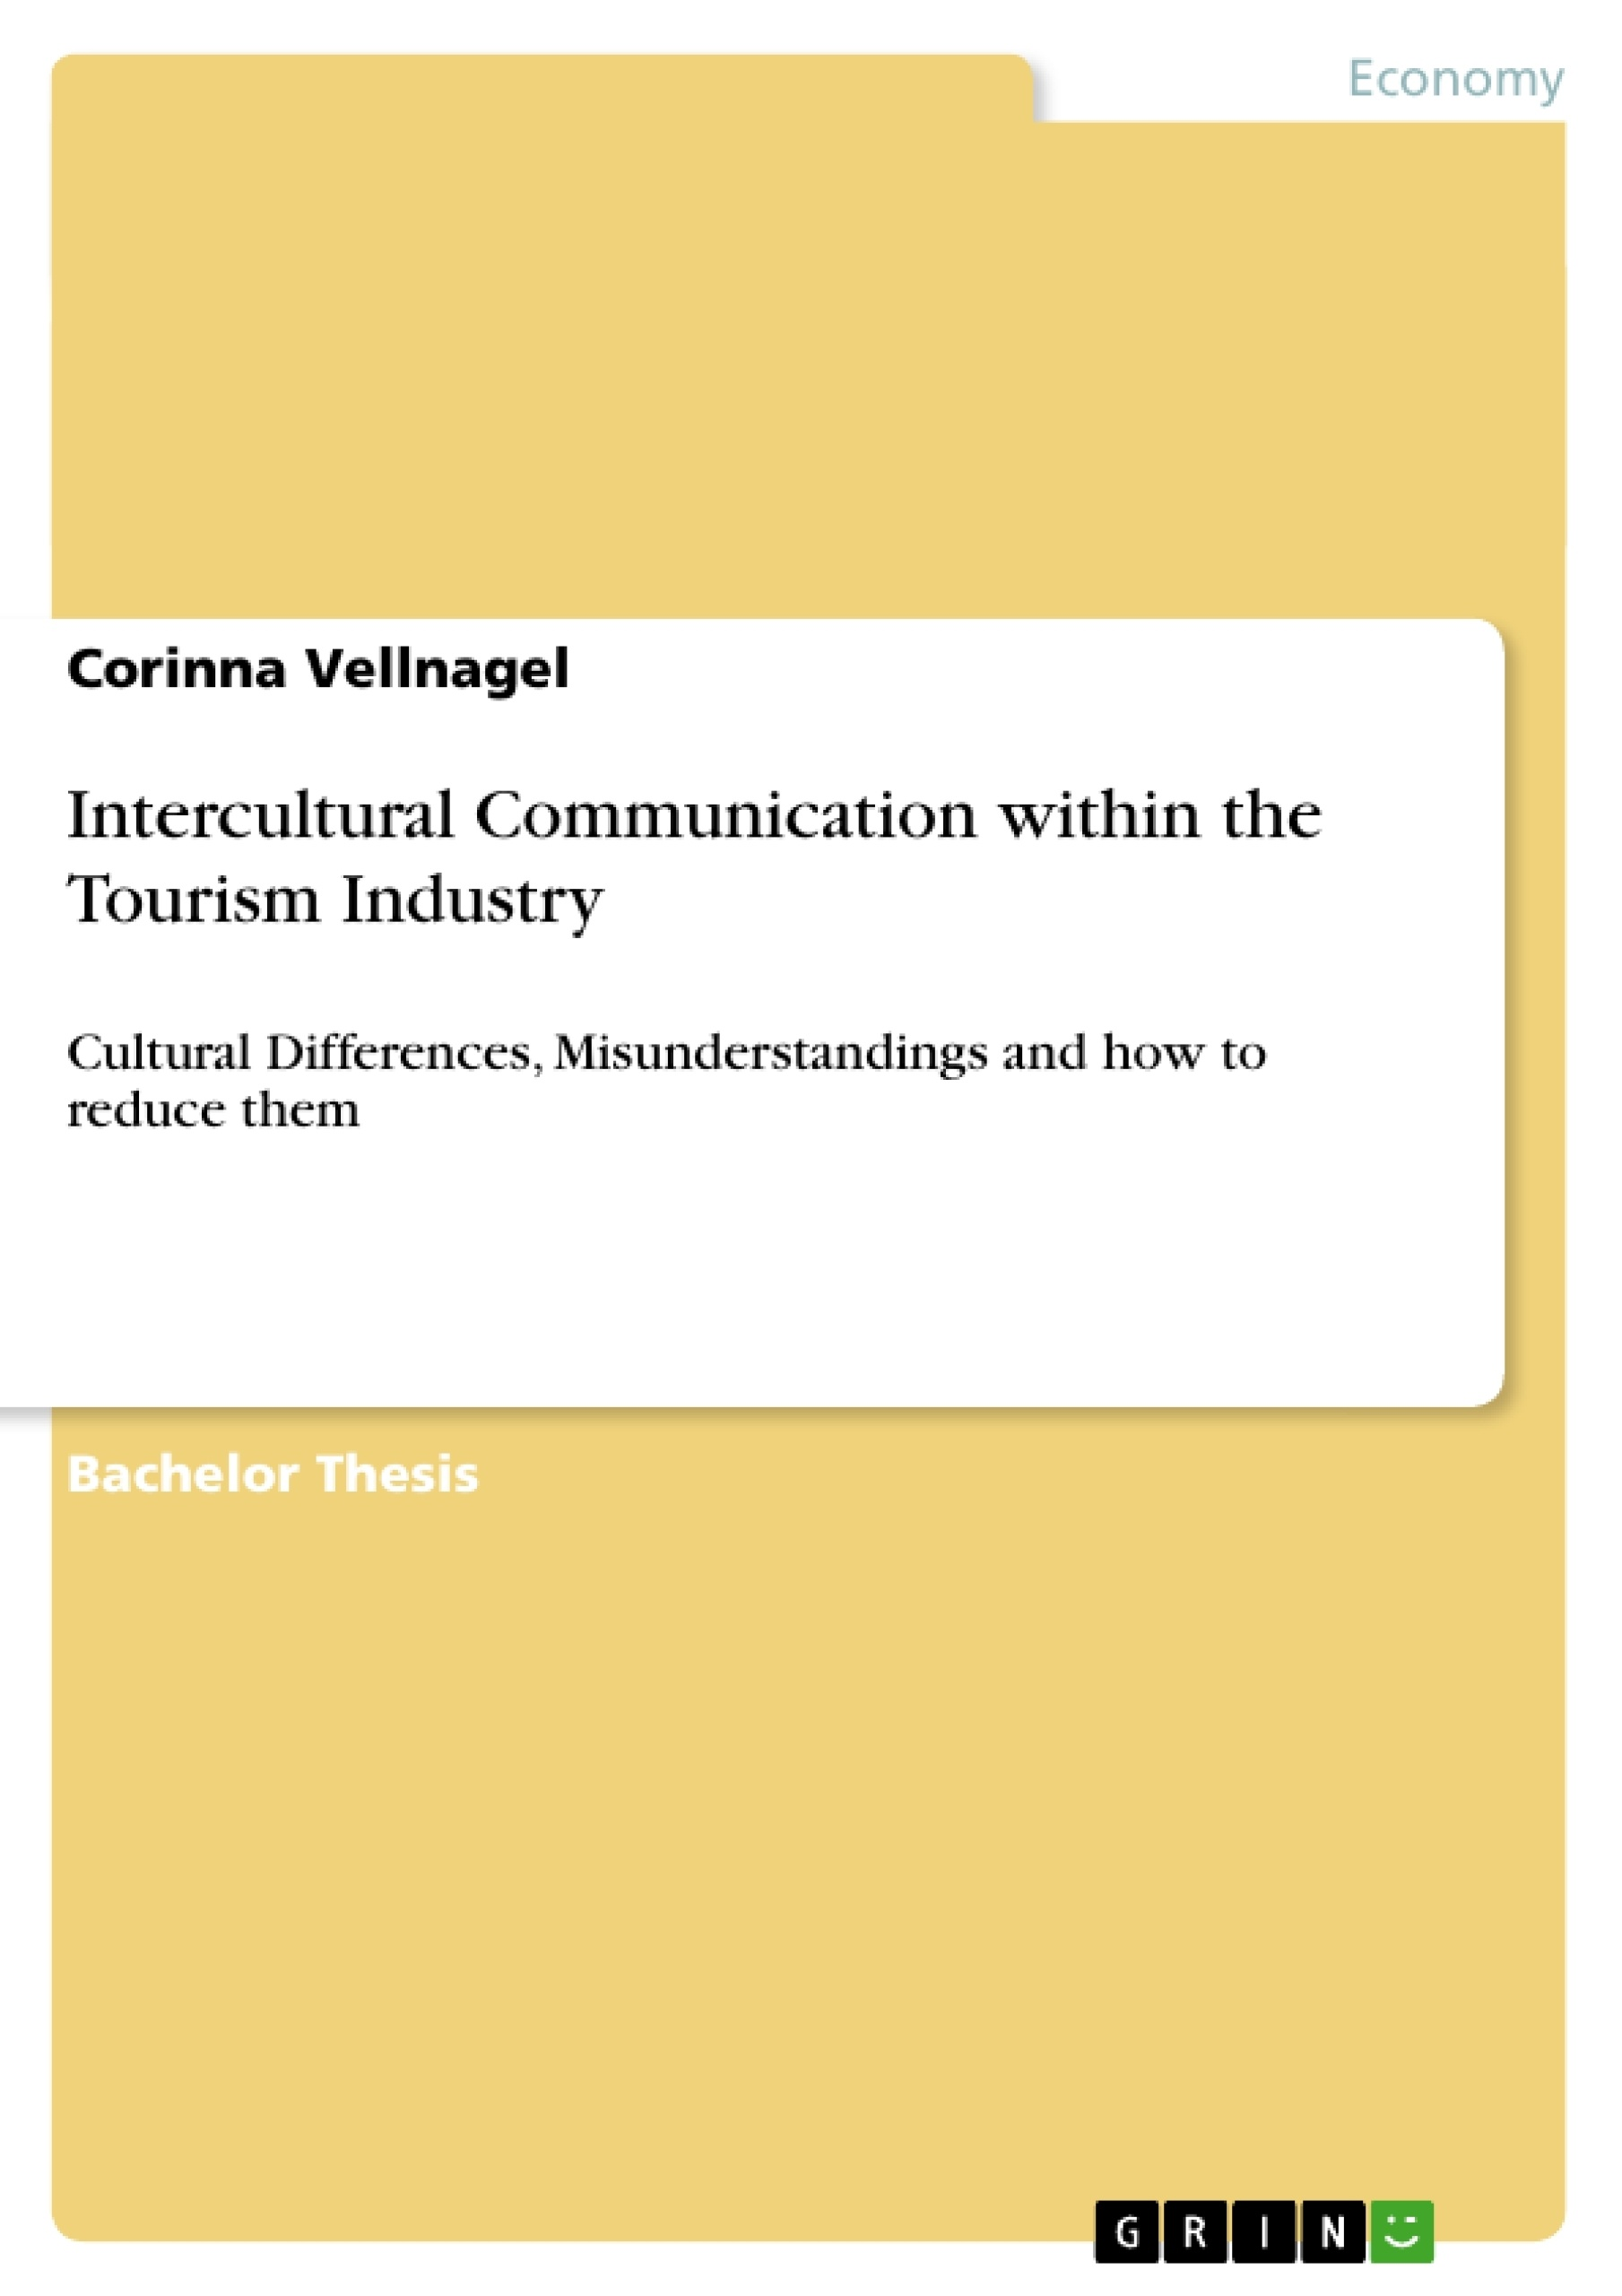 Title: Intercultural Communication within the Tourism Industry